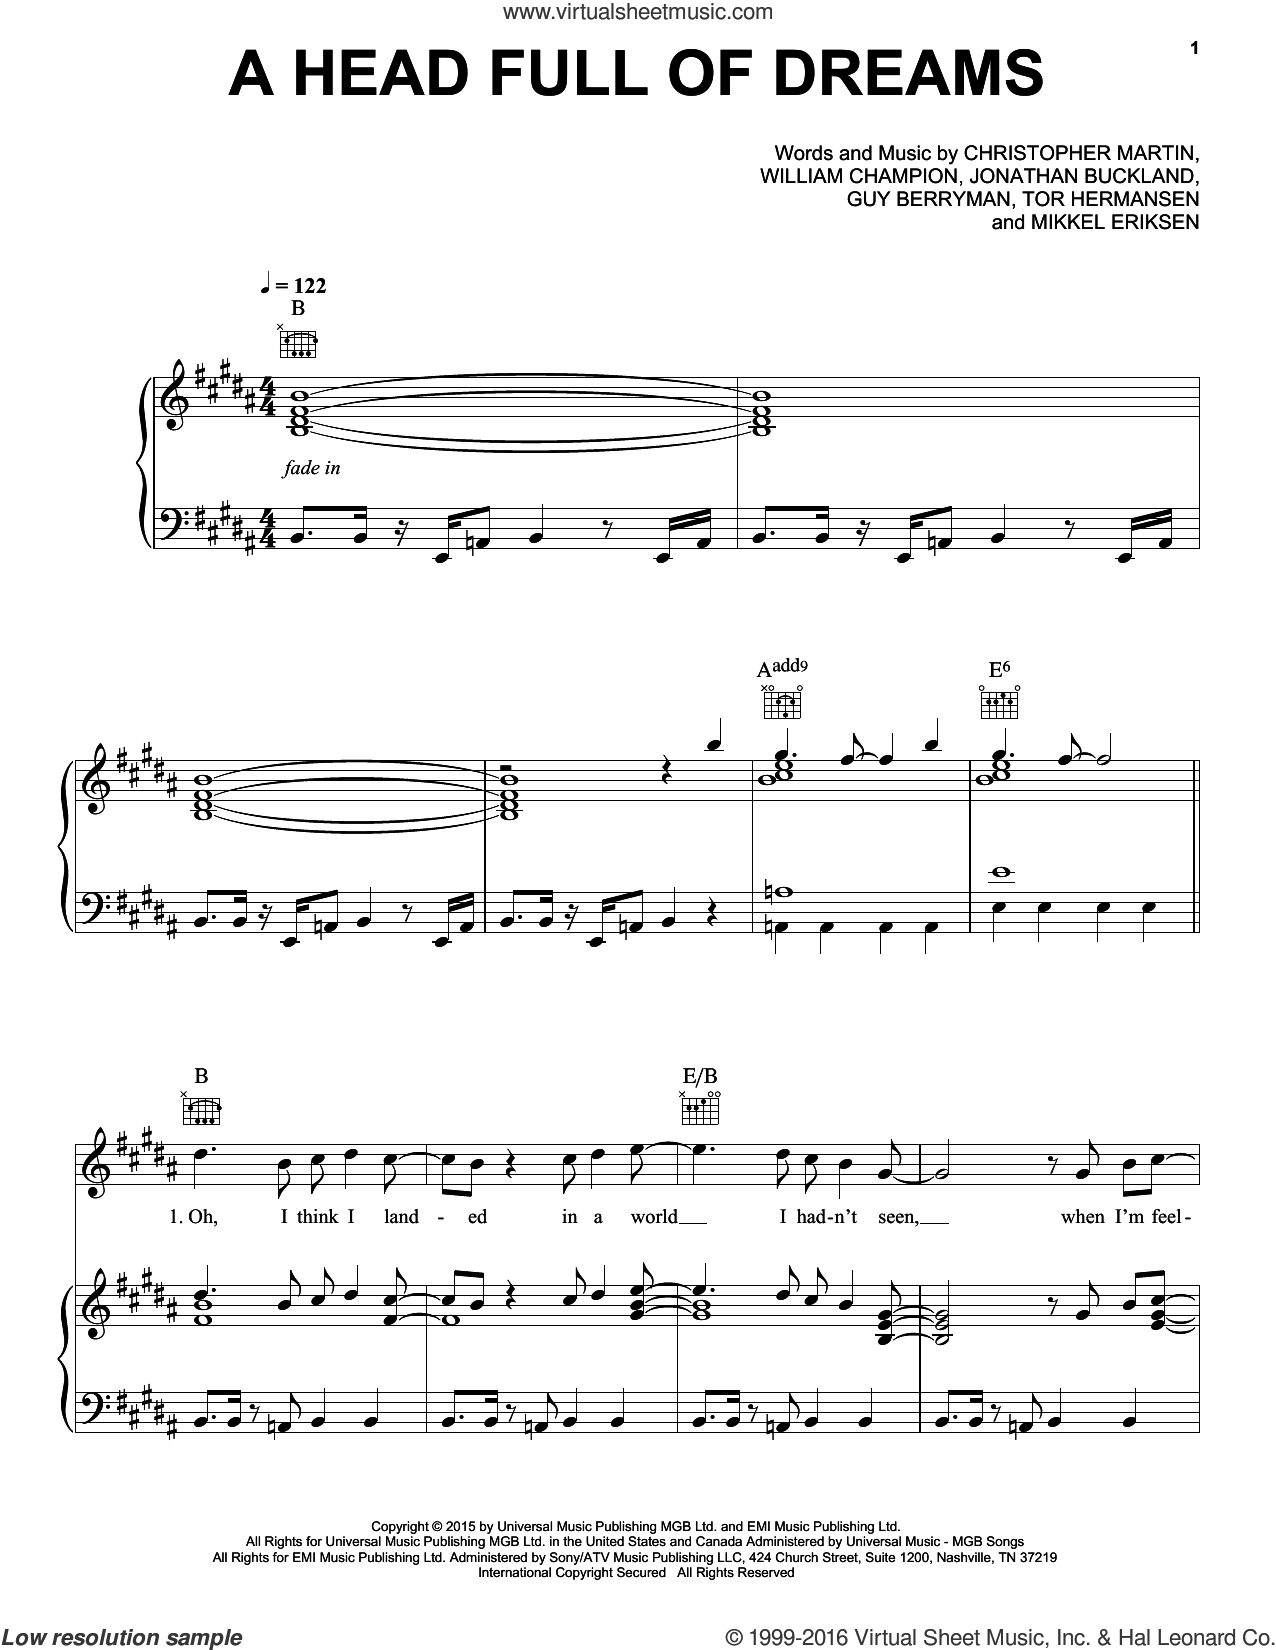 A Head Full Of Dreams sheet music for voice, piano or guitar by Coldplay, Christopher Martin, Guy Berryman, Jonathan Buckland, Mikkel Eriksen, Tor Erik Hermansen and William Champion, intermediate skill level